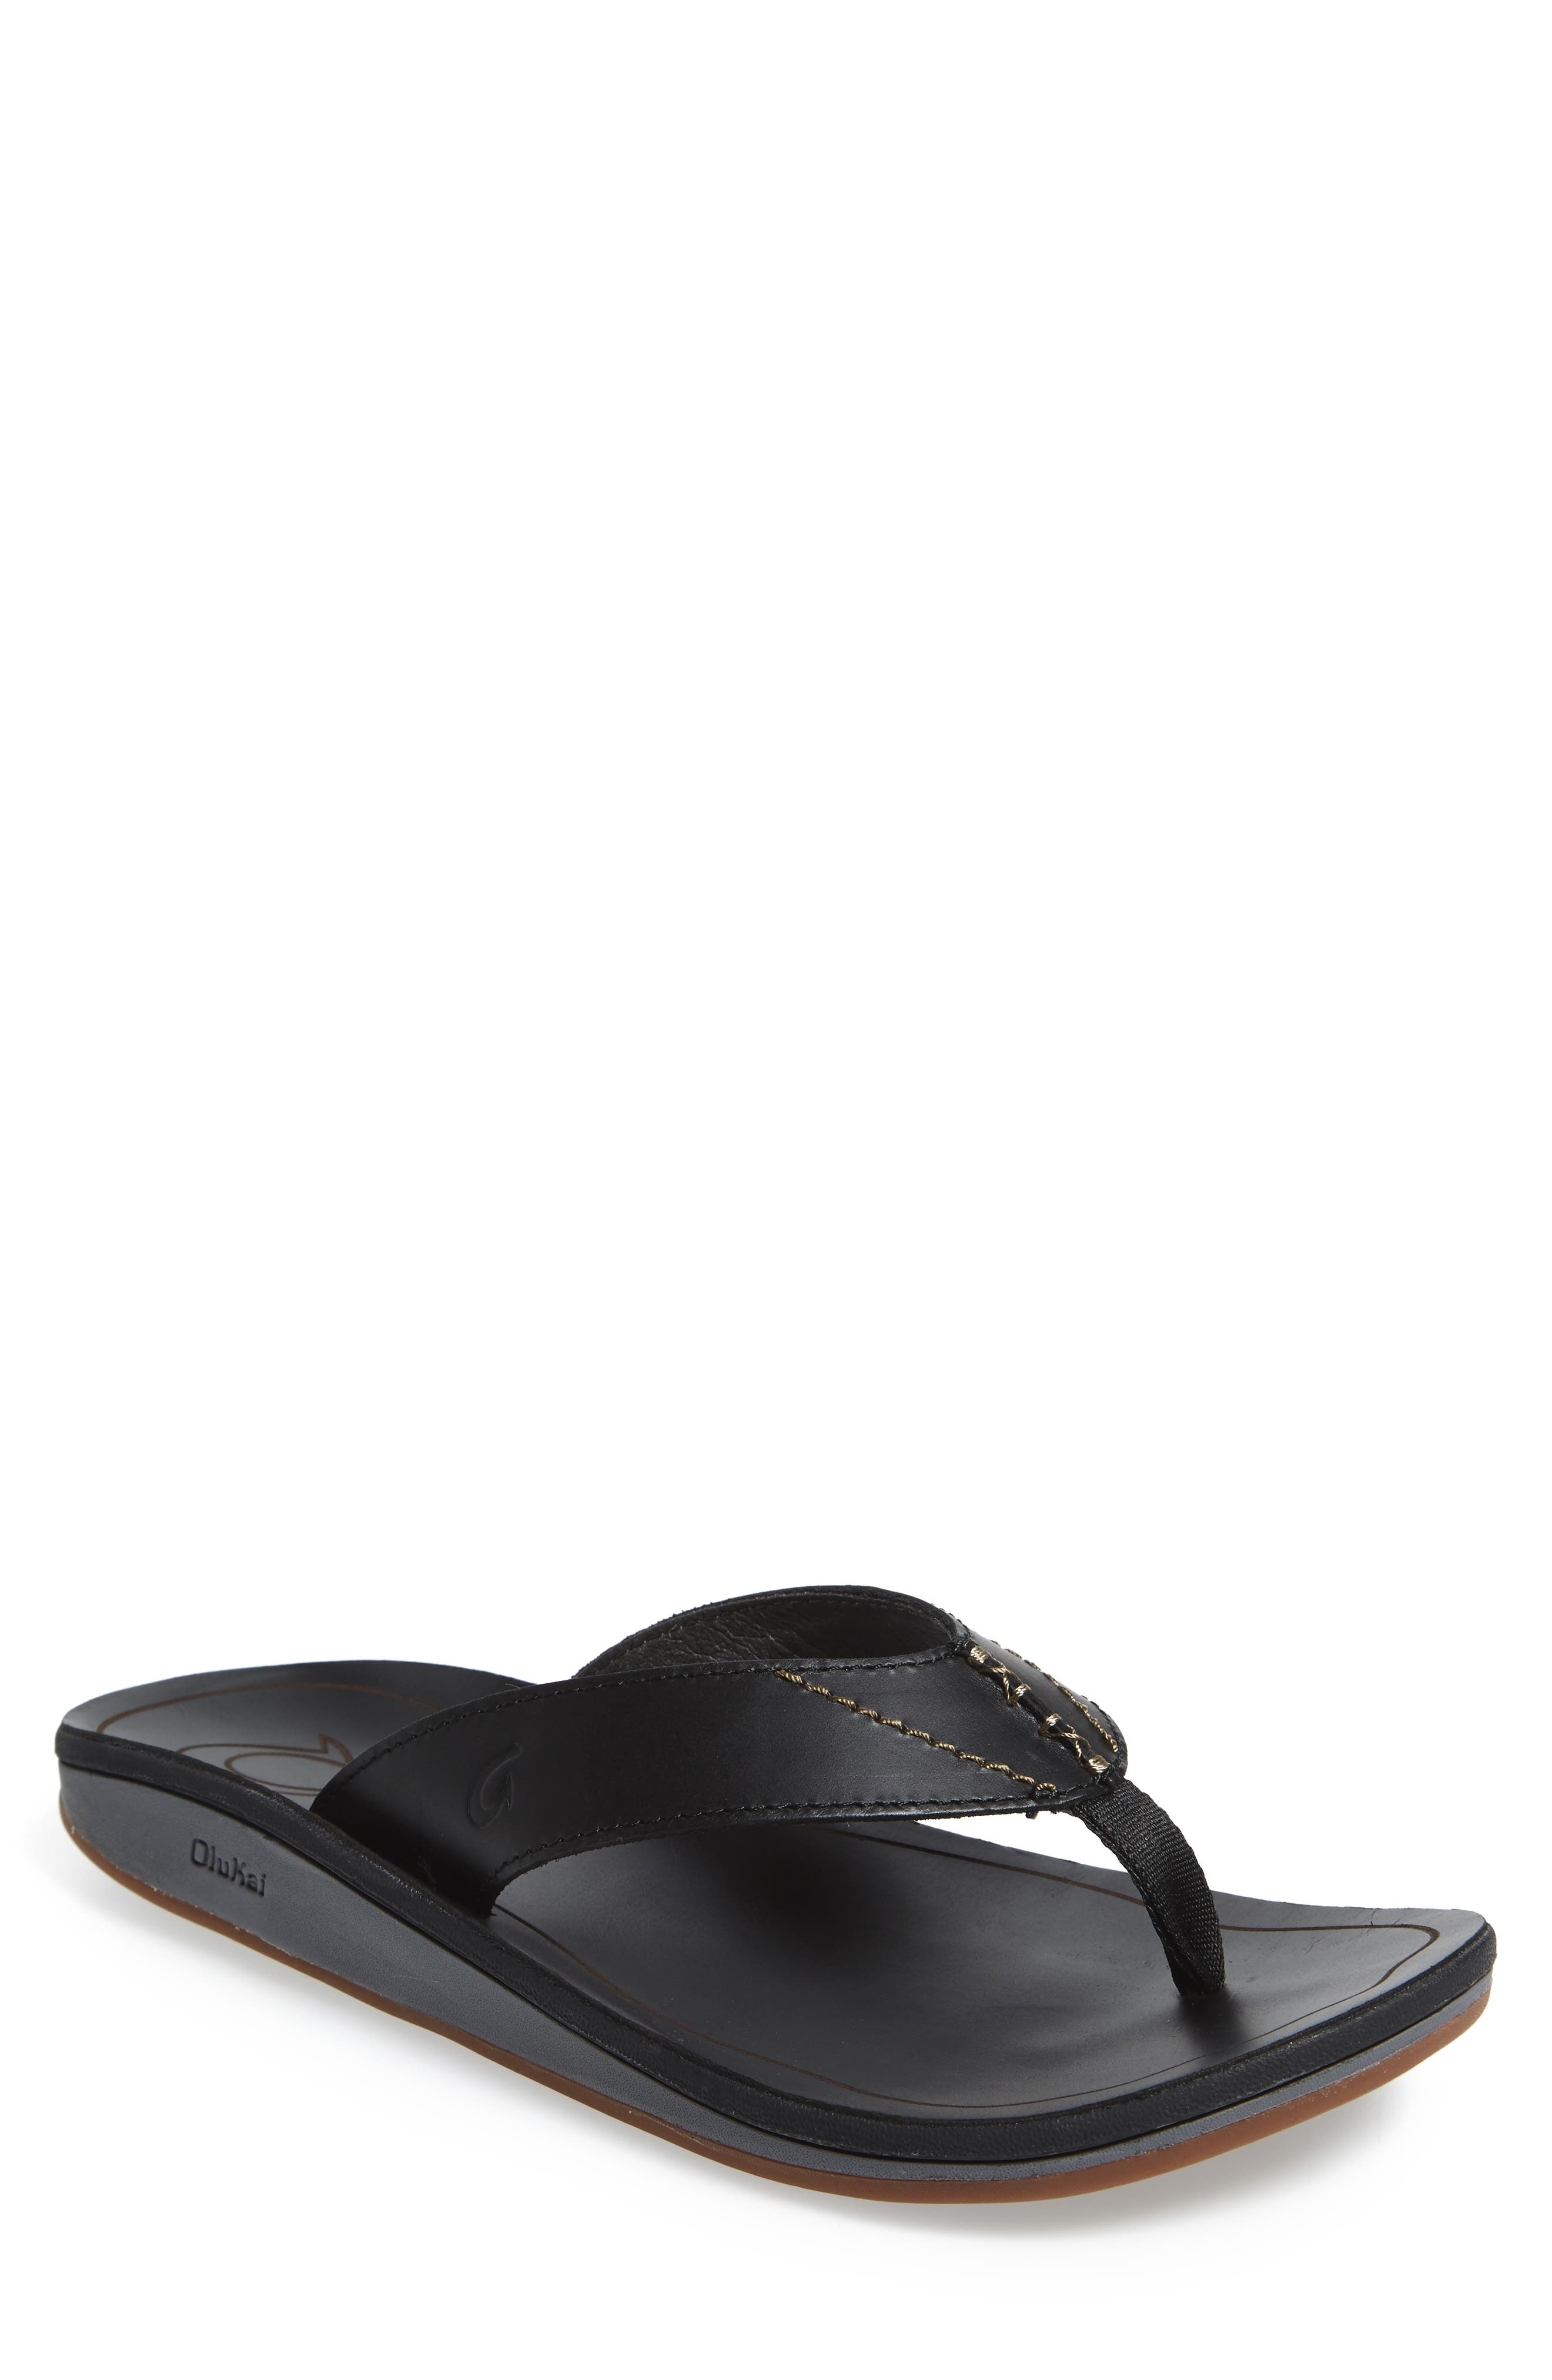 Nohona Ili Flip Flop,                             Main thumbnail 1, color,                             BLACK/ BLACK LEATHER